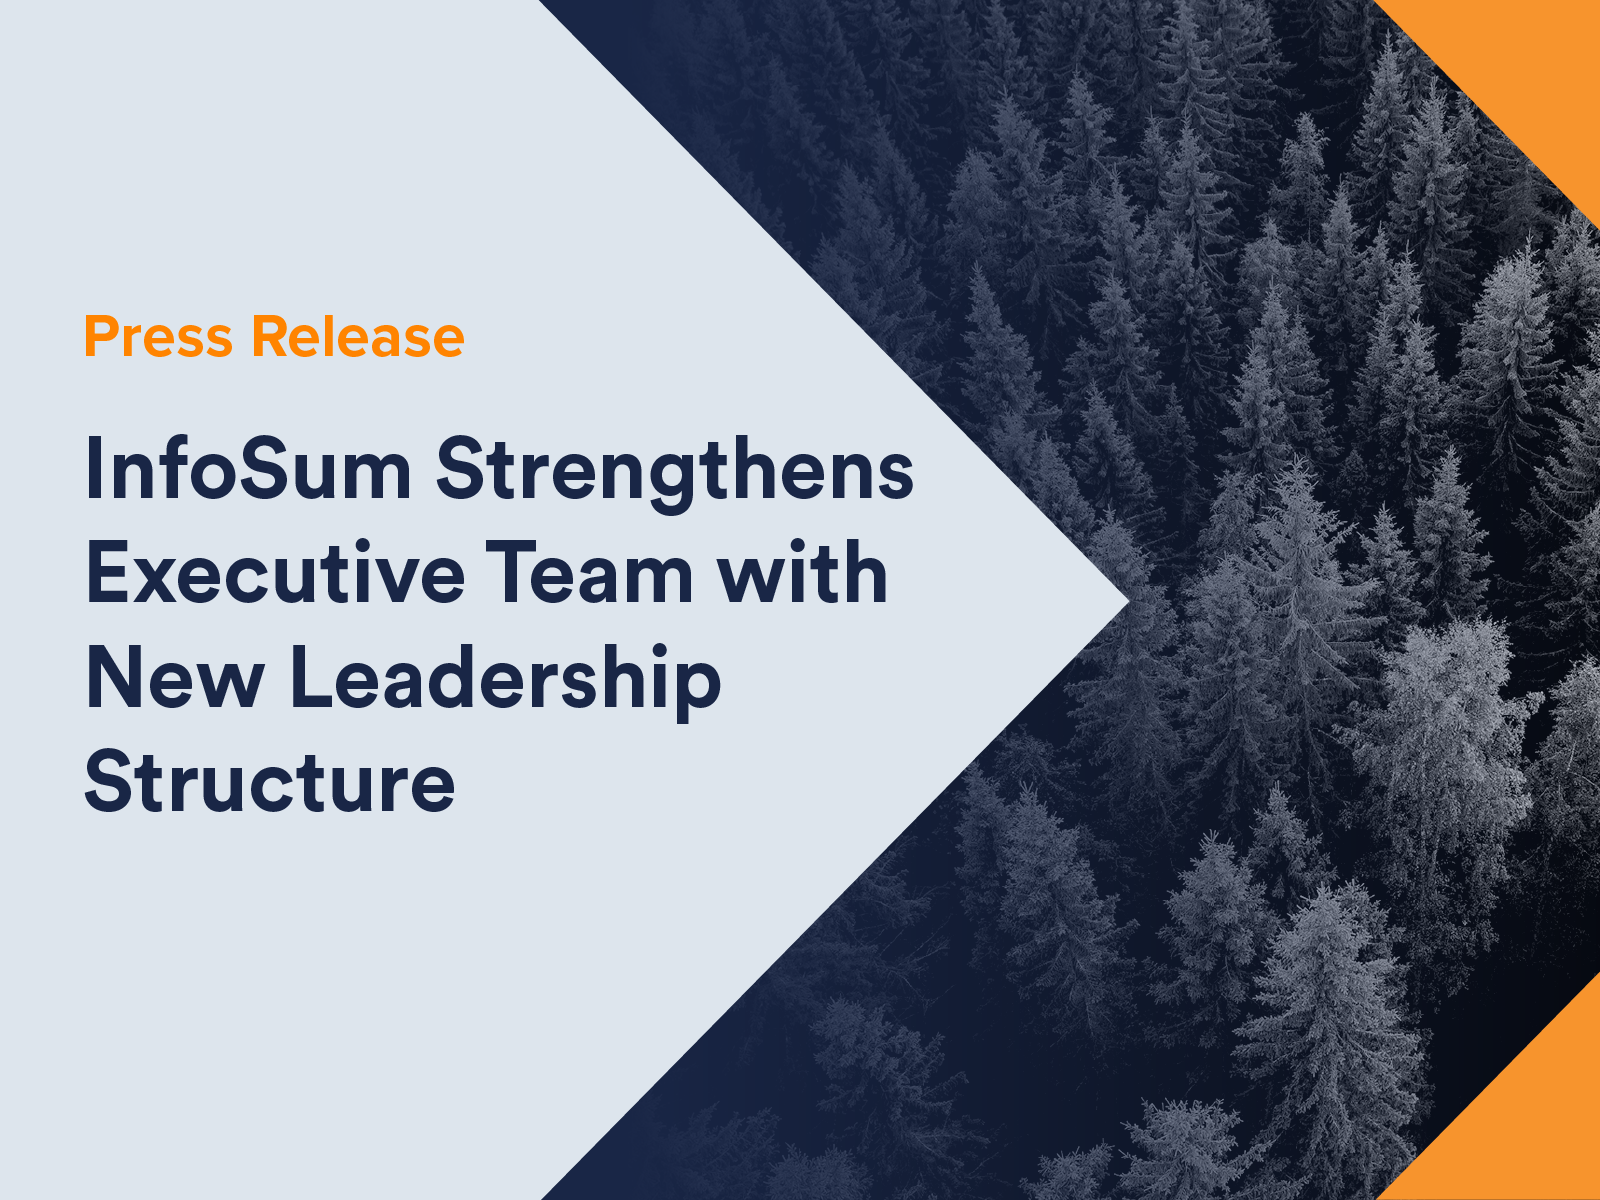 InfoSum strengthens executive team with new leadership structure